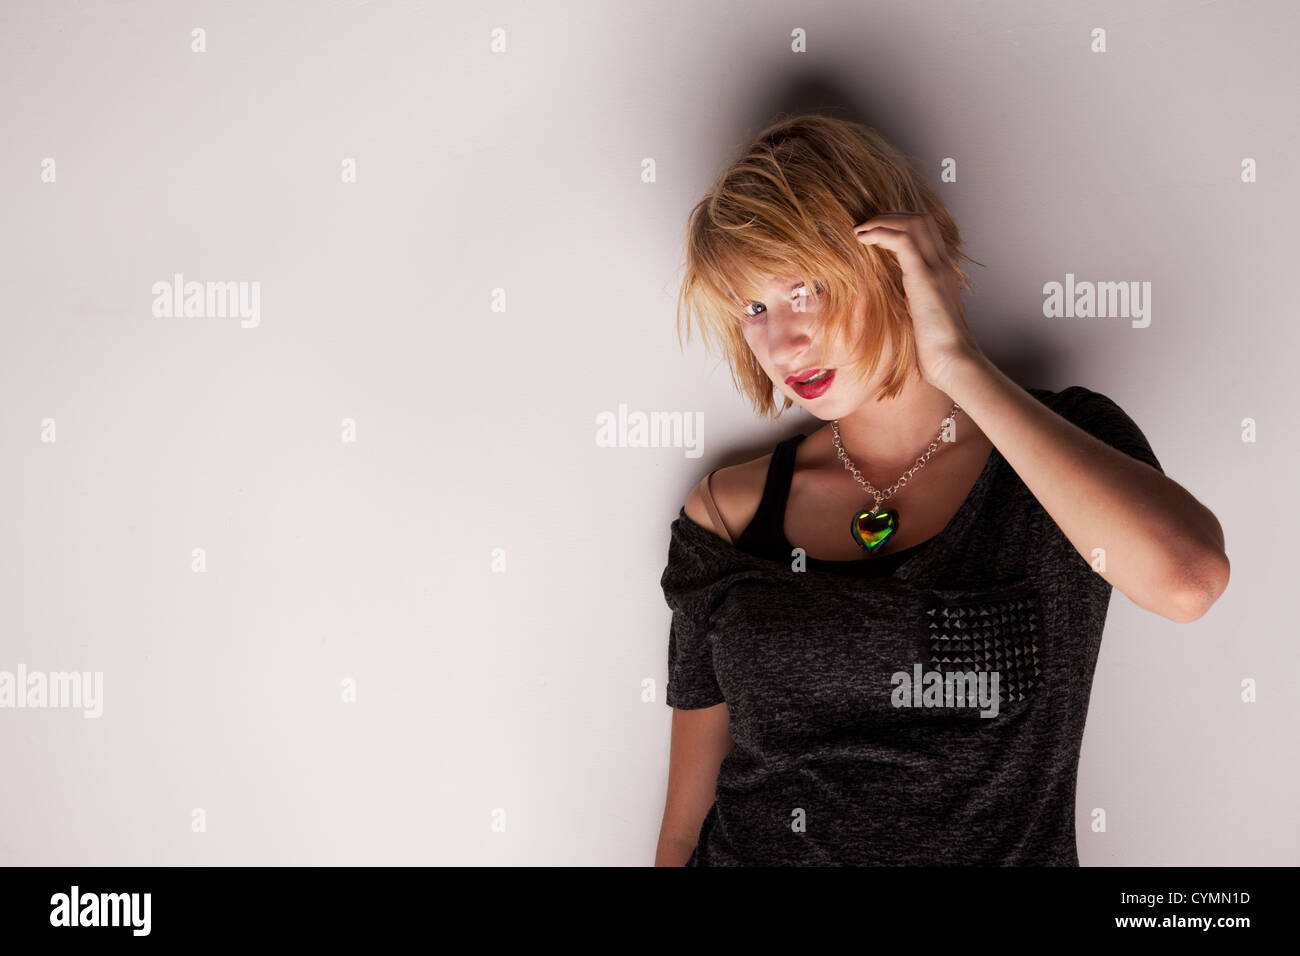 Apprehensive Teenage Girl Standing Against a White Wall - Stock Image